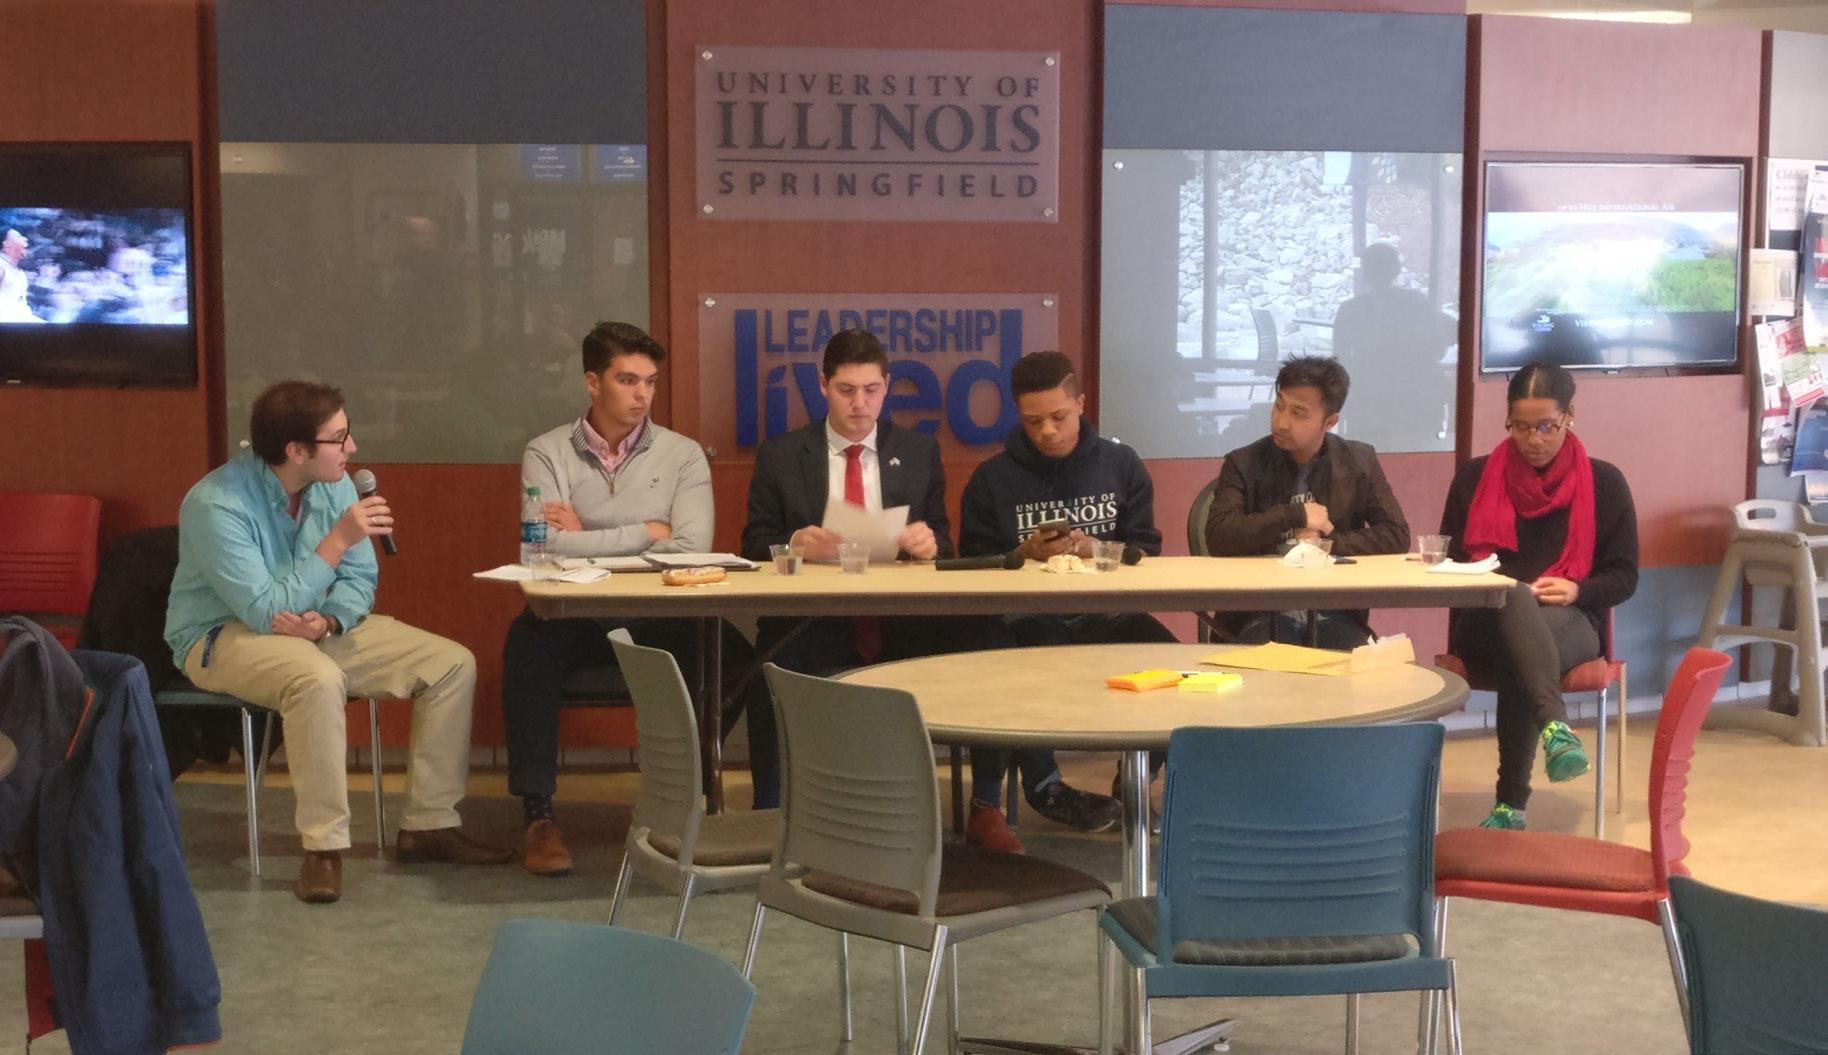 SGA President Austin Mehmet moderated the Democracy & Donuts III panel comprised of various student leaders on campus.